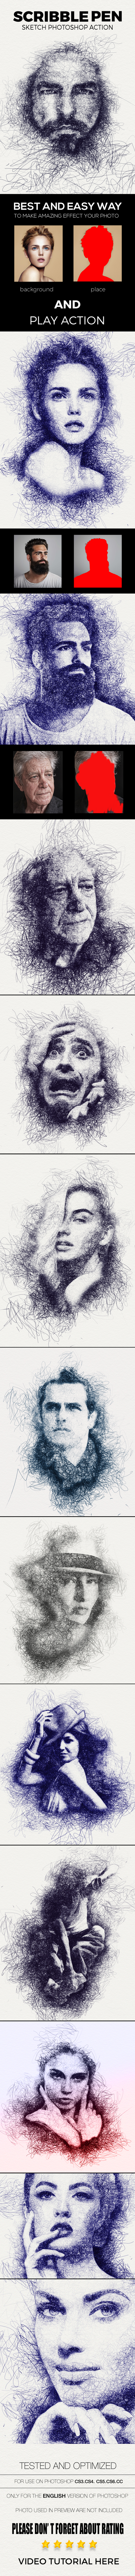 Scribble Pen Sketch Photoshop Action - Photo Effects Actions